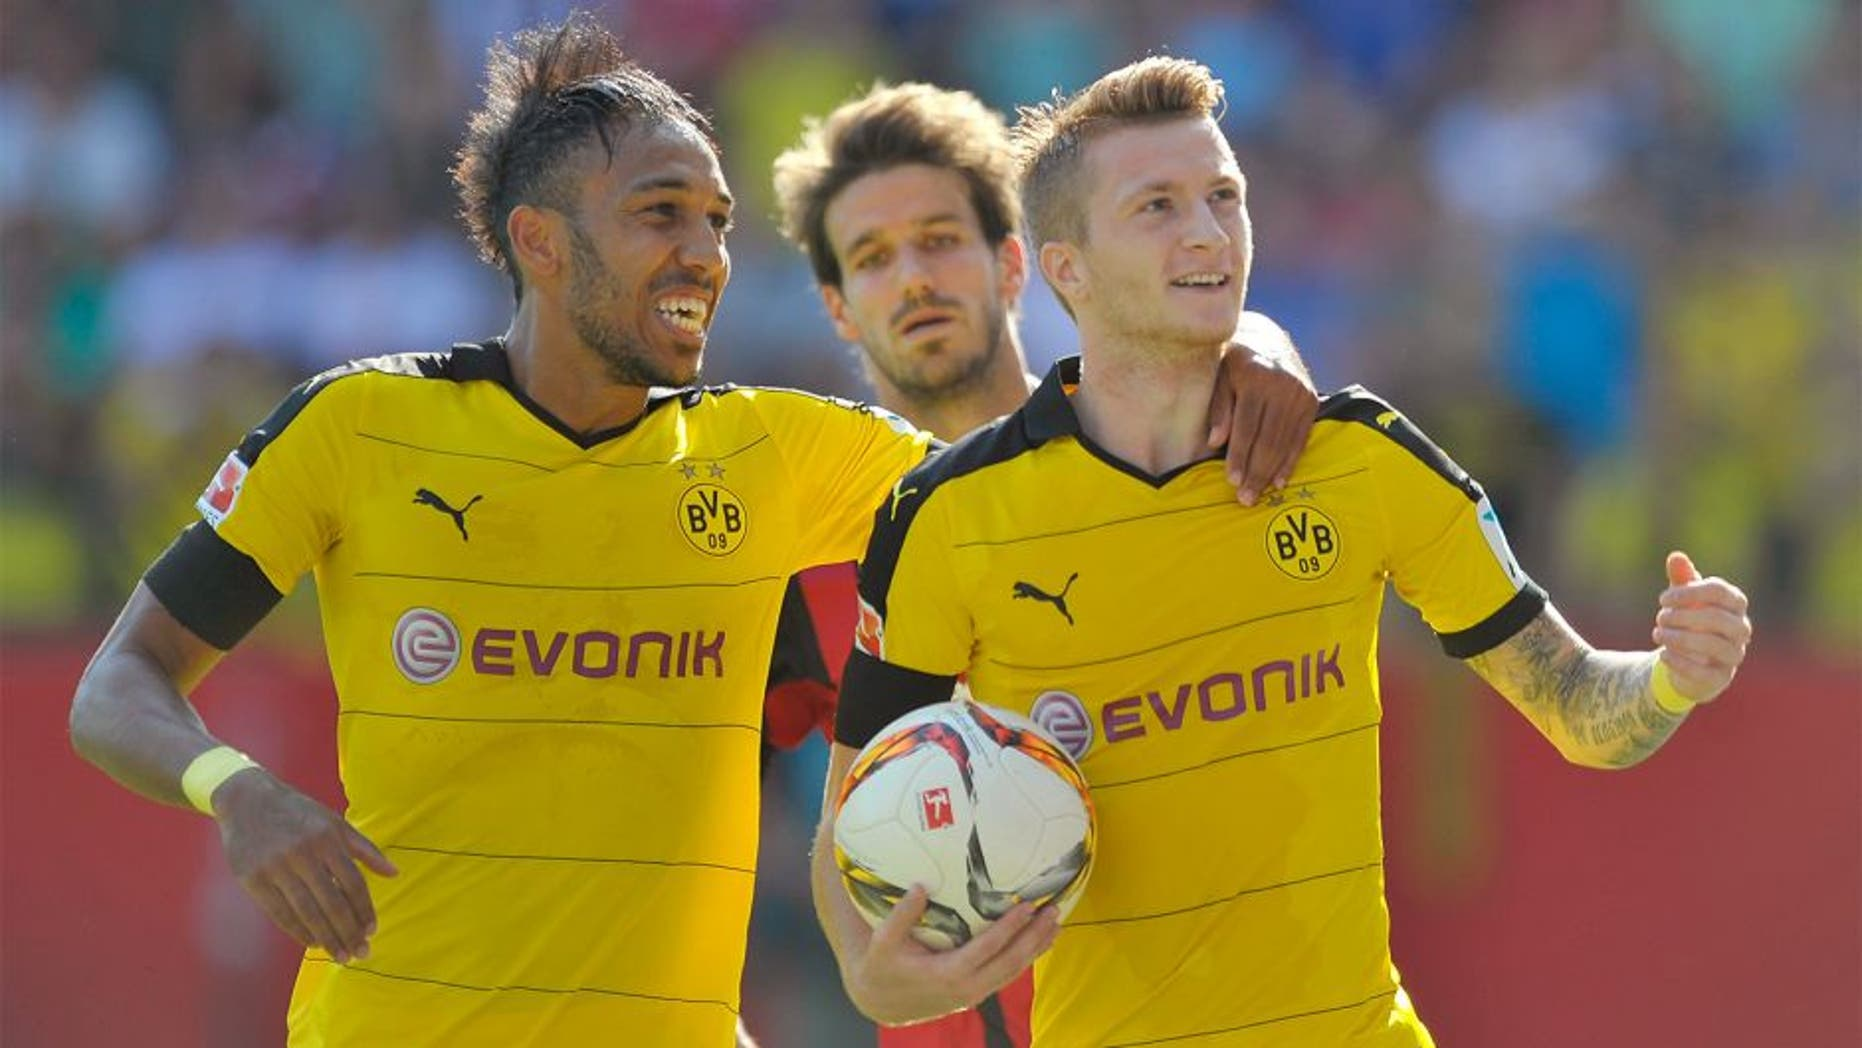 INGOLSTADT, GERMANY - AUGUST 23: Marco Reus (R) and Pierre-Emerick Aubameyang of Borussia Dortmund celebrate their team's second goal during the Bundesliga match between FC Ingolstadt and Borussia Dortmund at Audi Sportpark on August 23, 2015 in Ingolstadt, Germany. (Photo by Lennart Preiss/Bongarts/Getty Images)